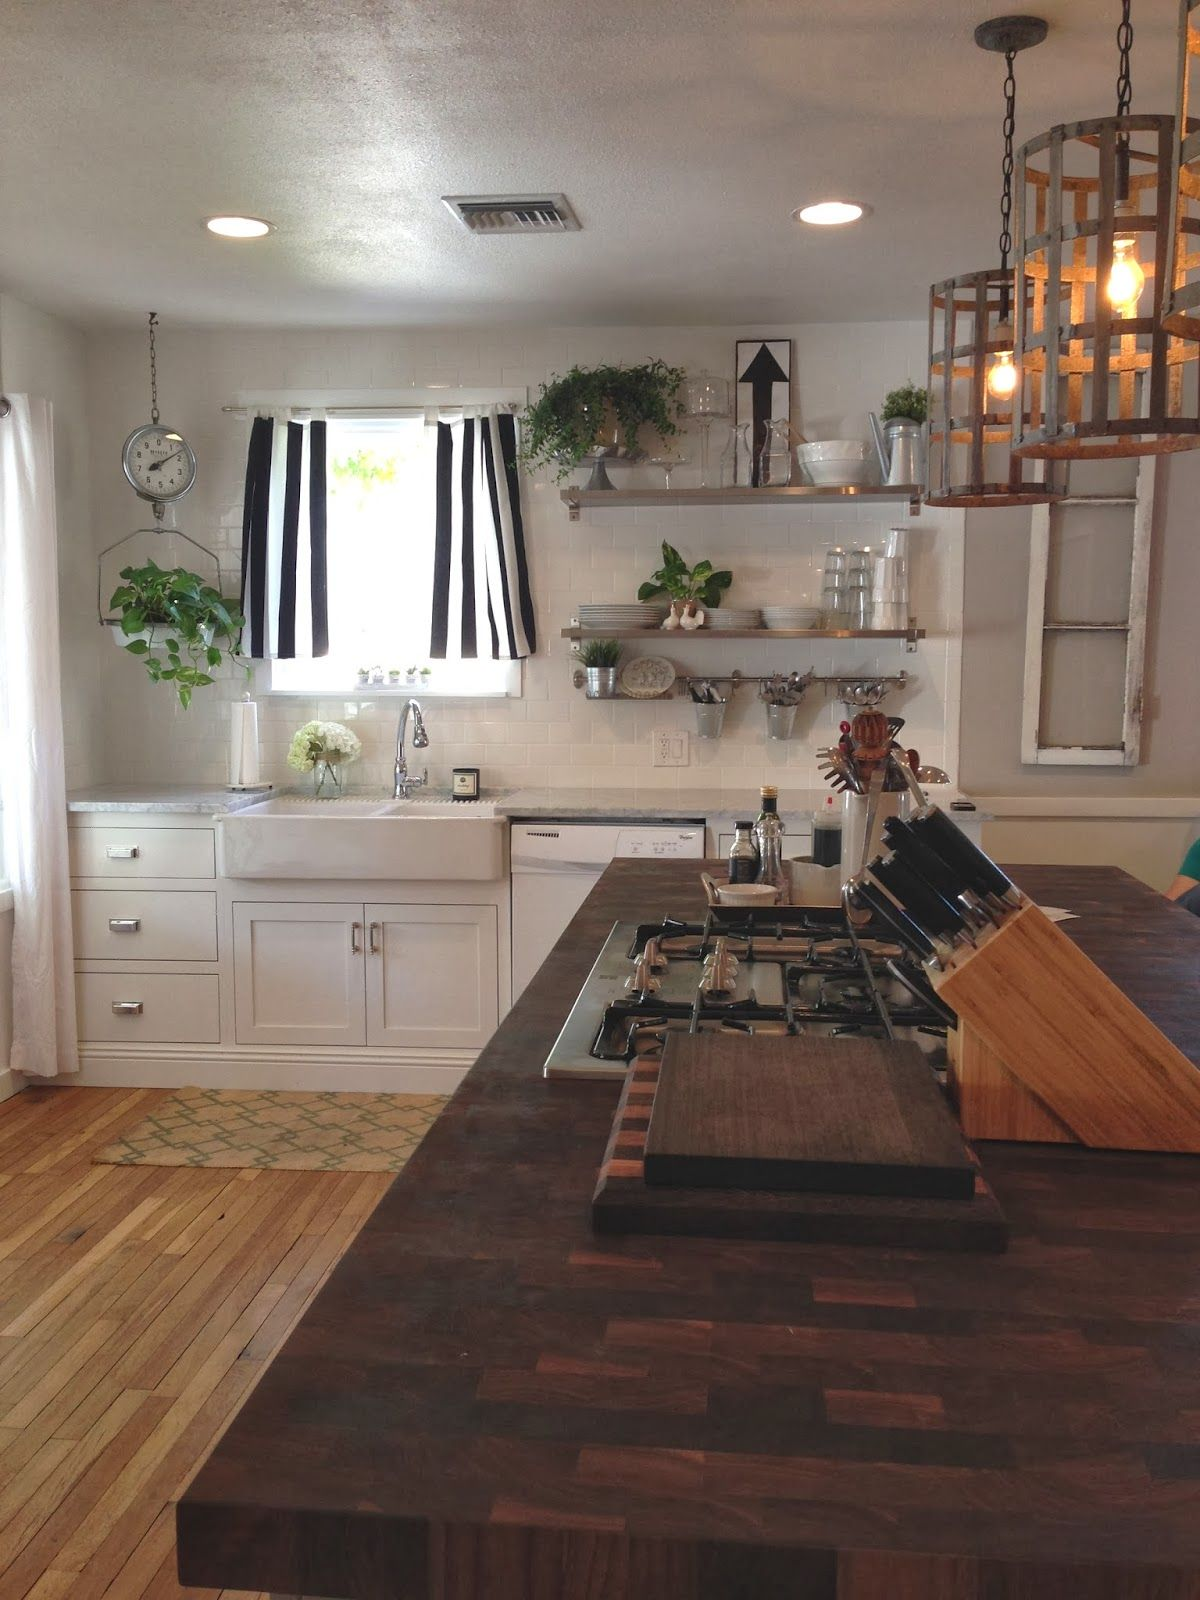 Open shelves near the sink for easy put away! Buckets for